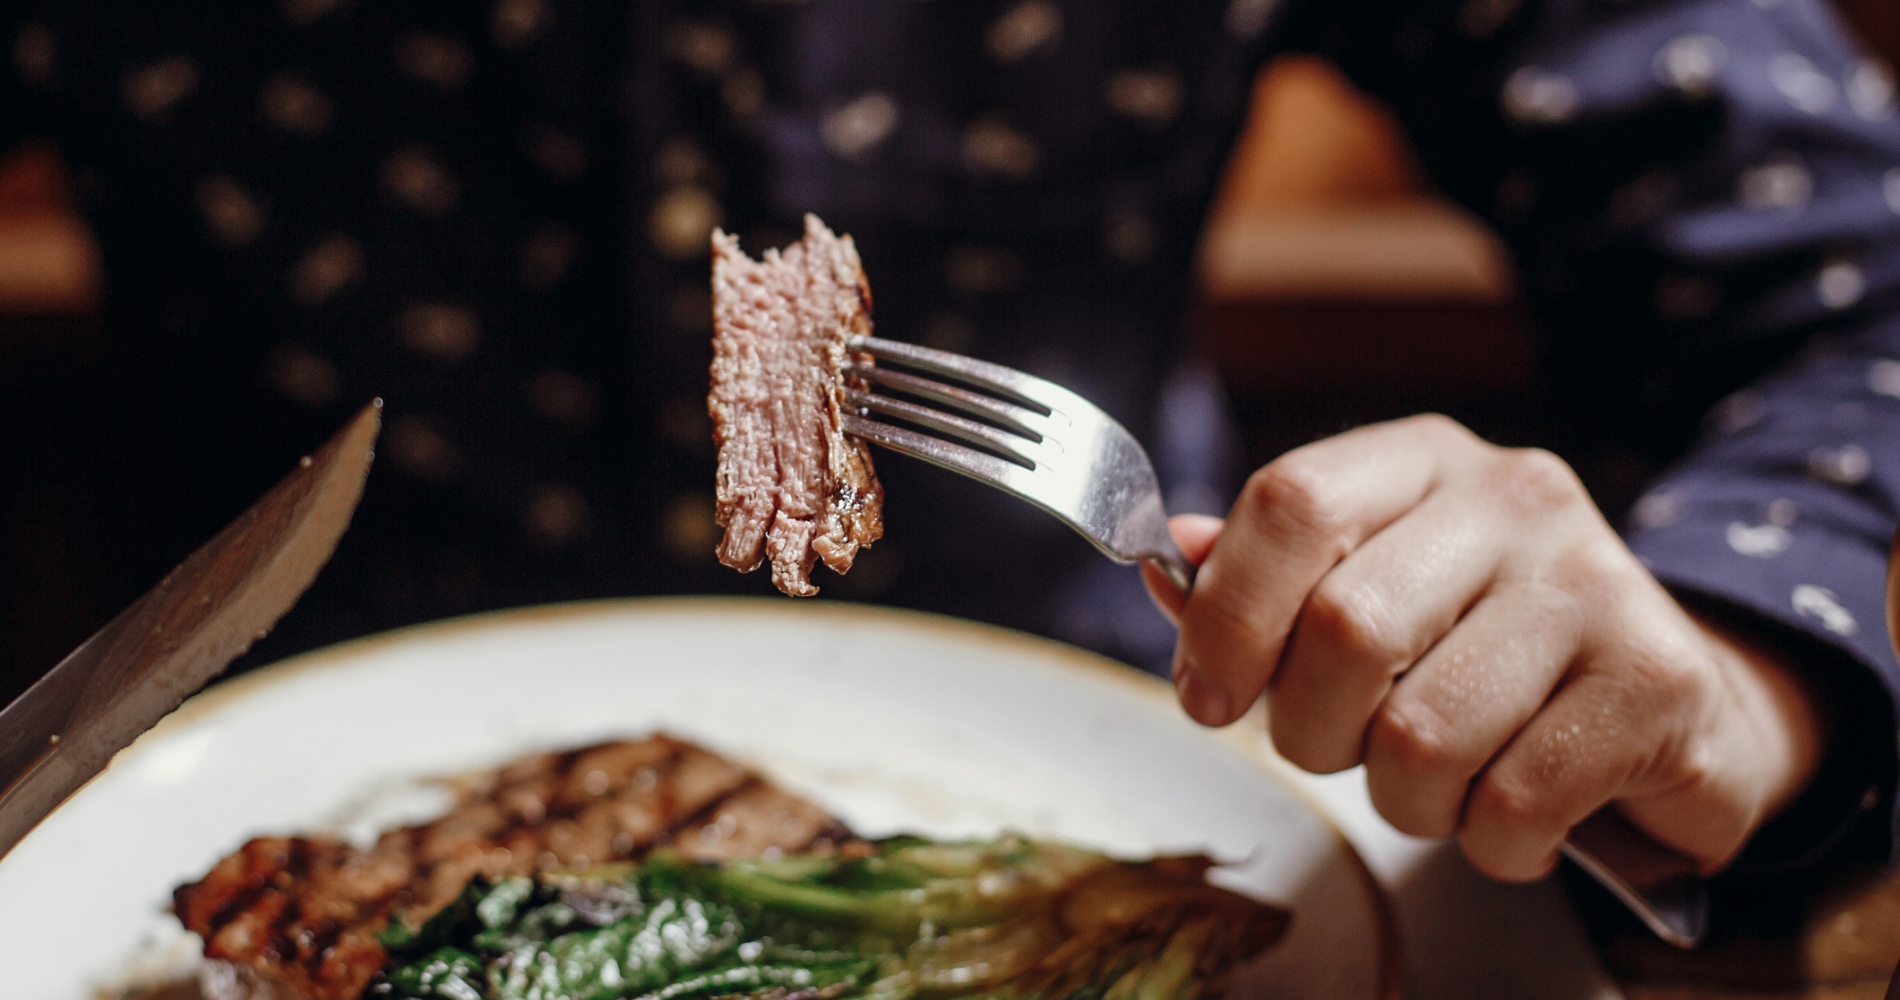 close up of man eating steak